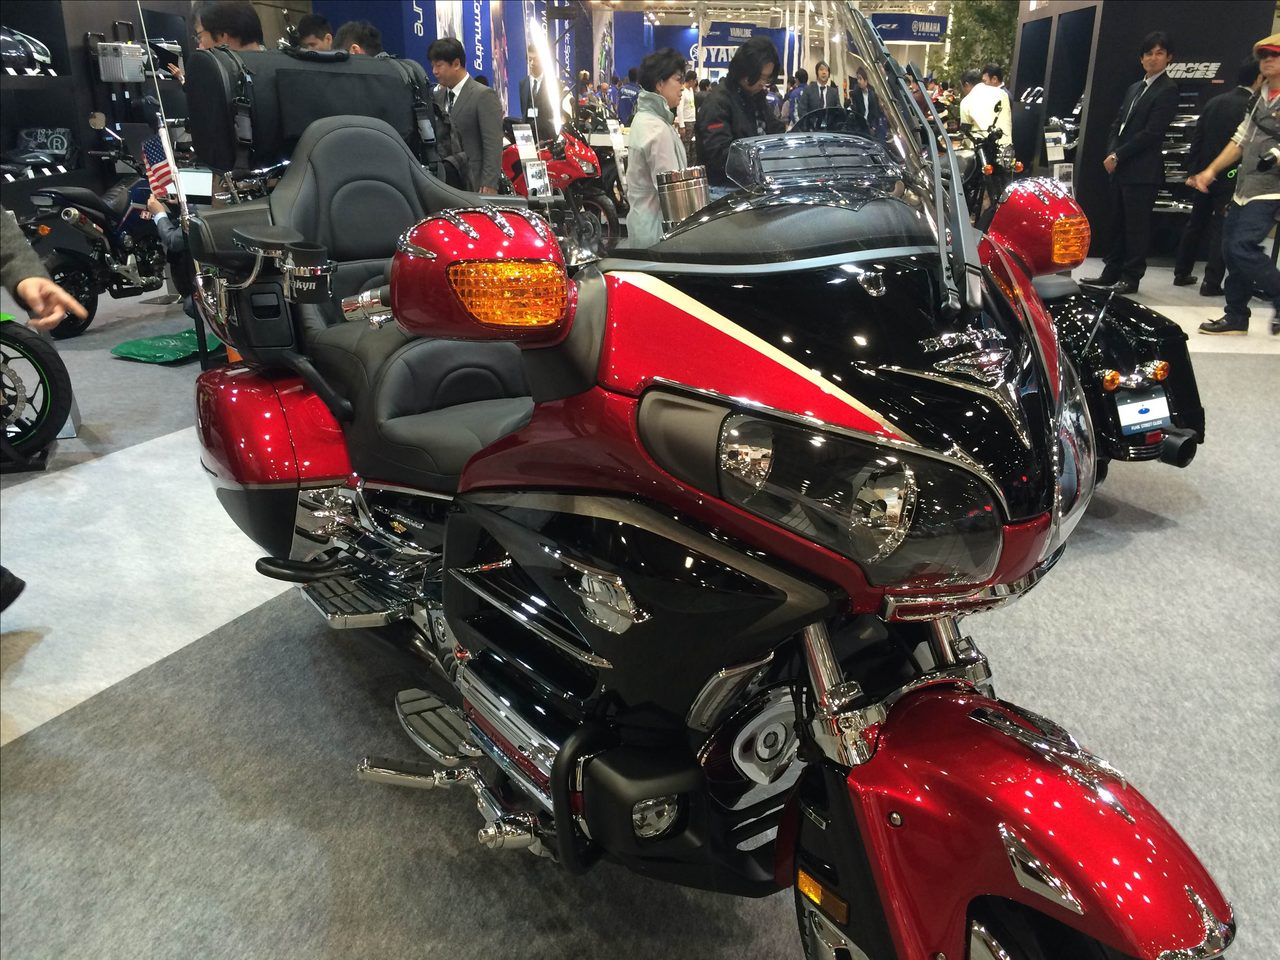 honda goldwing gl1800 lawrence motorcycle x cars your life. Black Bedroom Furniture Sets. Home Design Ideas